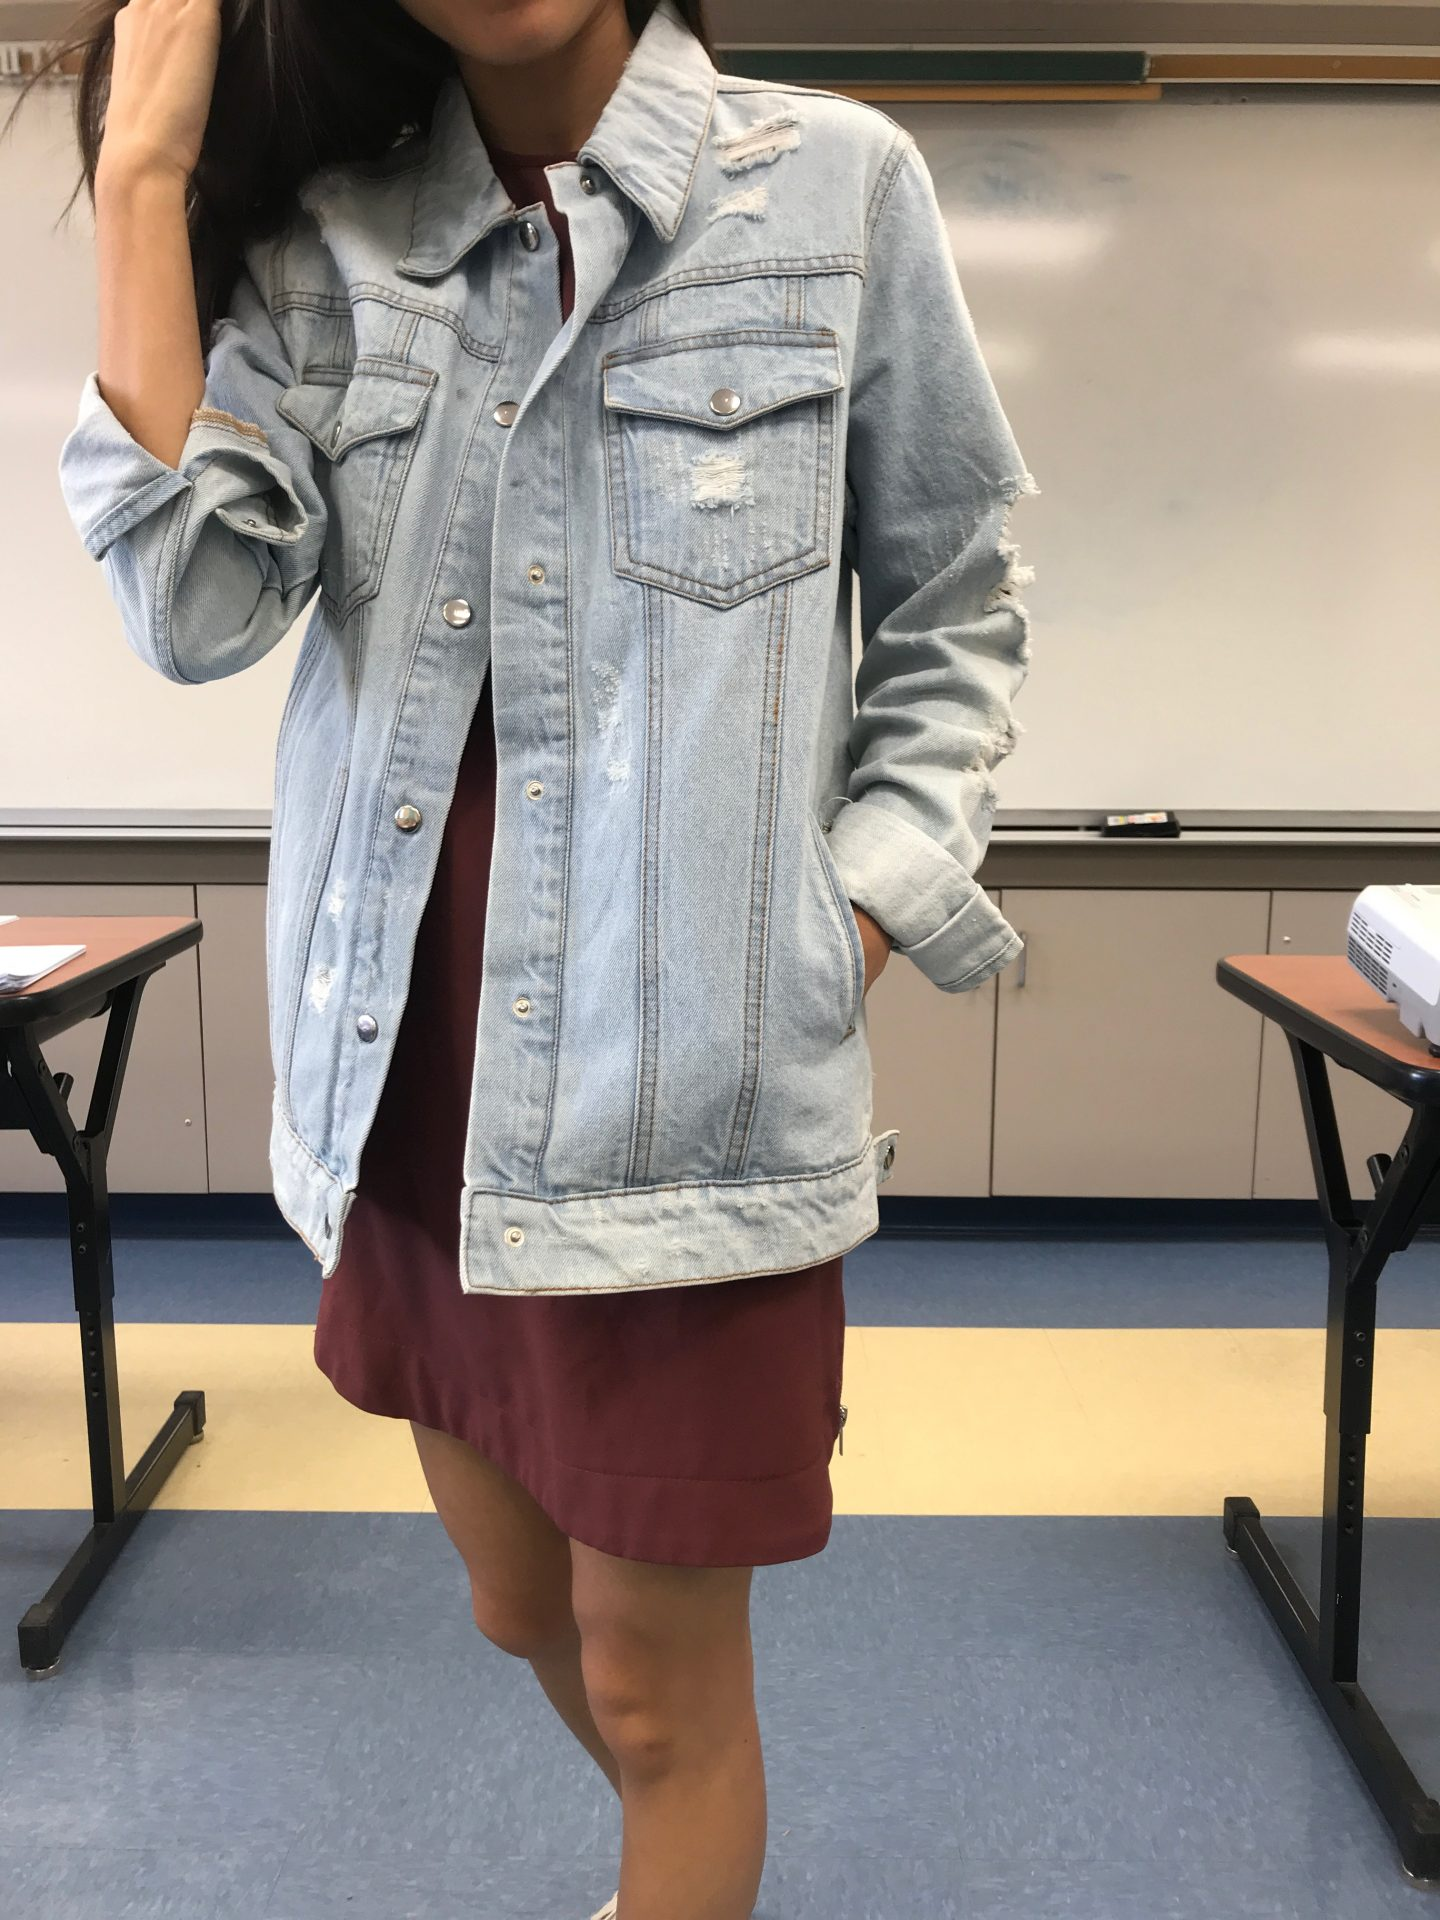 Curious how to style a distressed jean jacket? Los Angeles Lifestyle Blogger My Teachers Got Style is sharing her favorite ways to style a distressed jean jacket. Click to see how here!